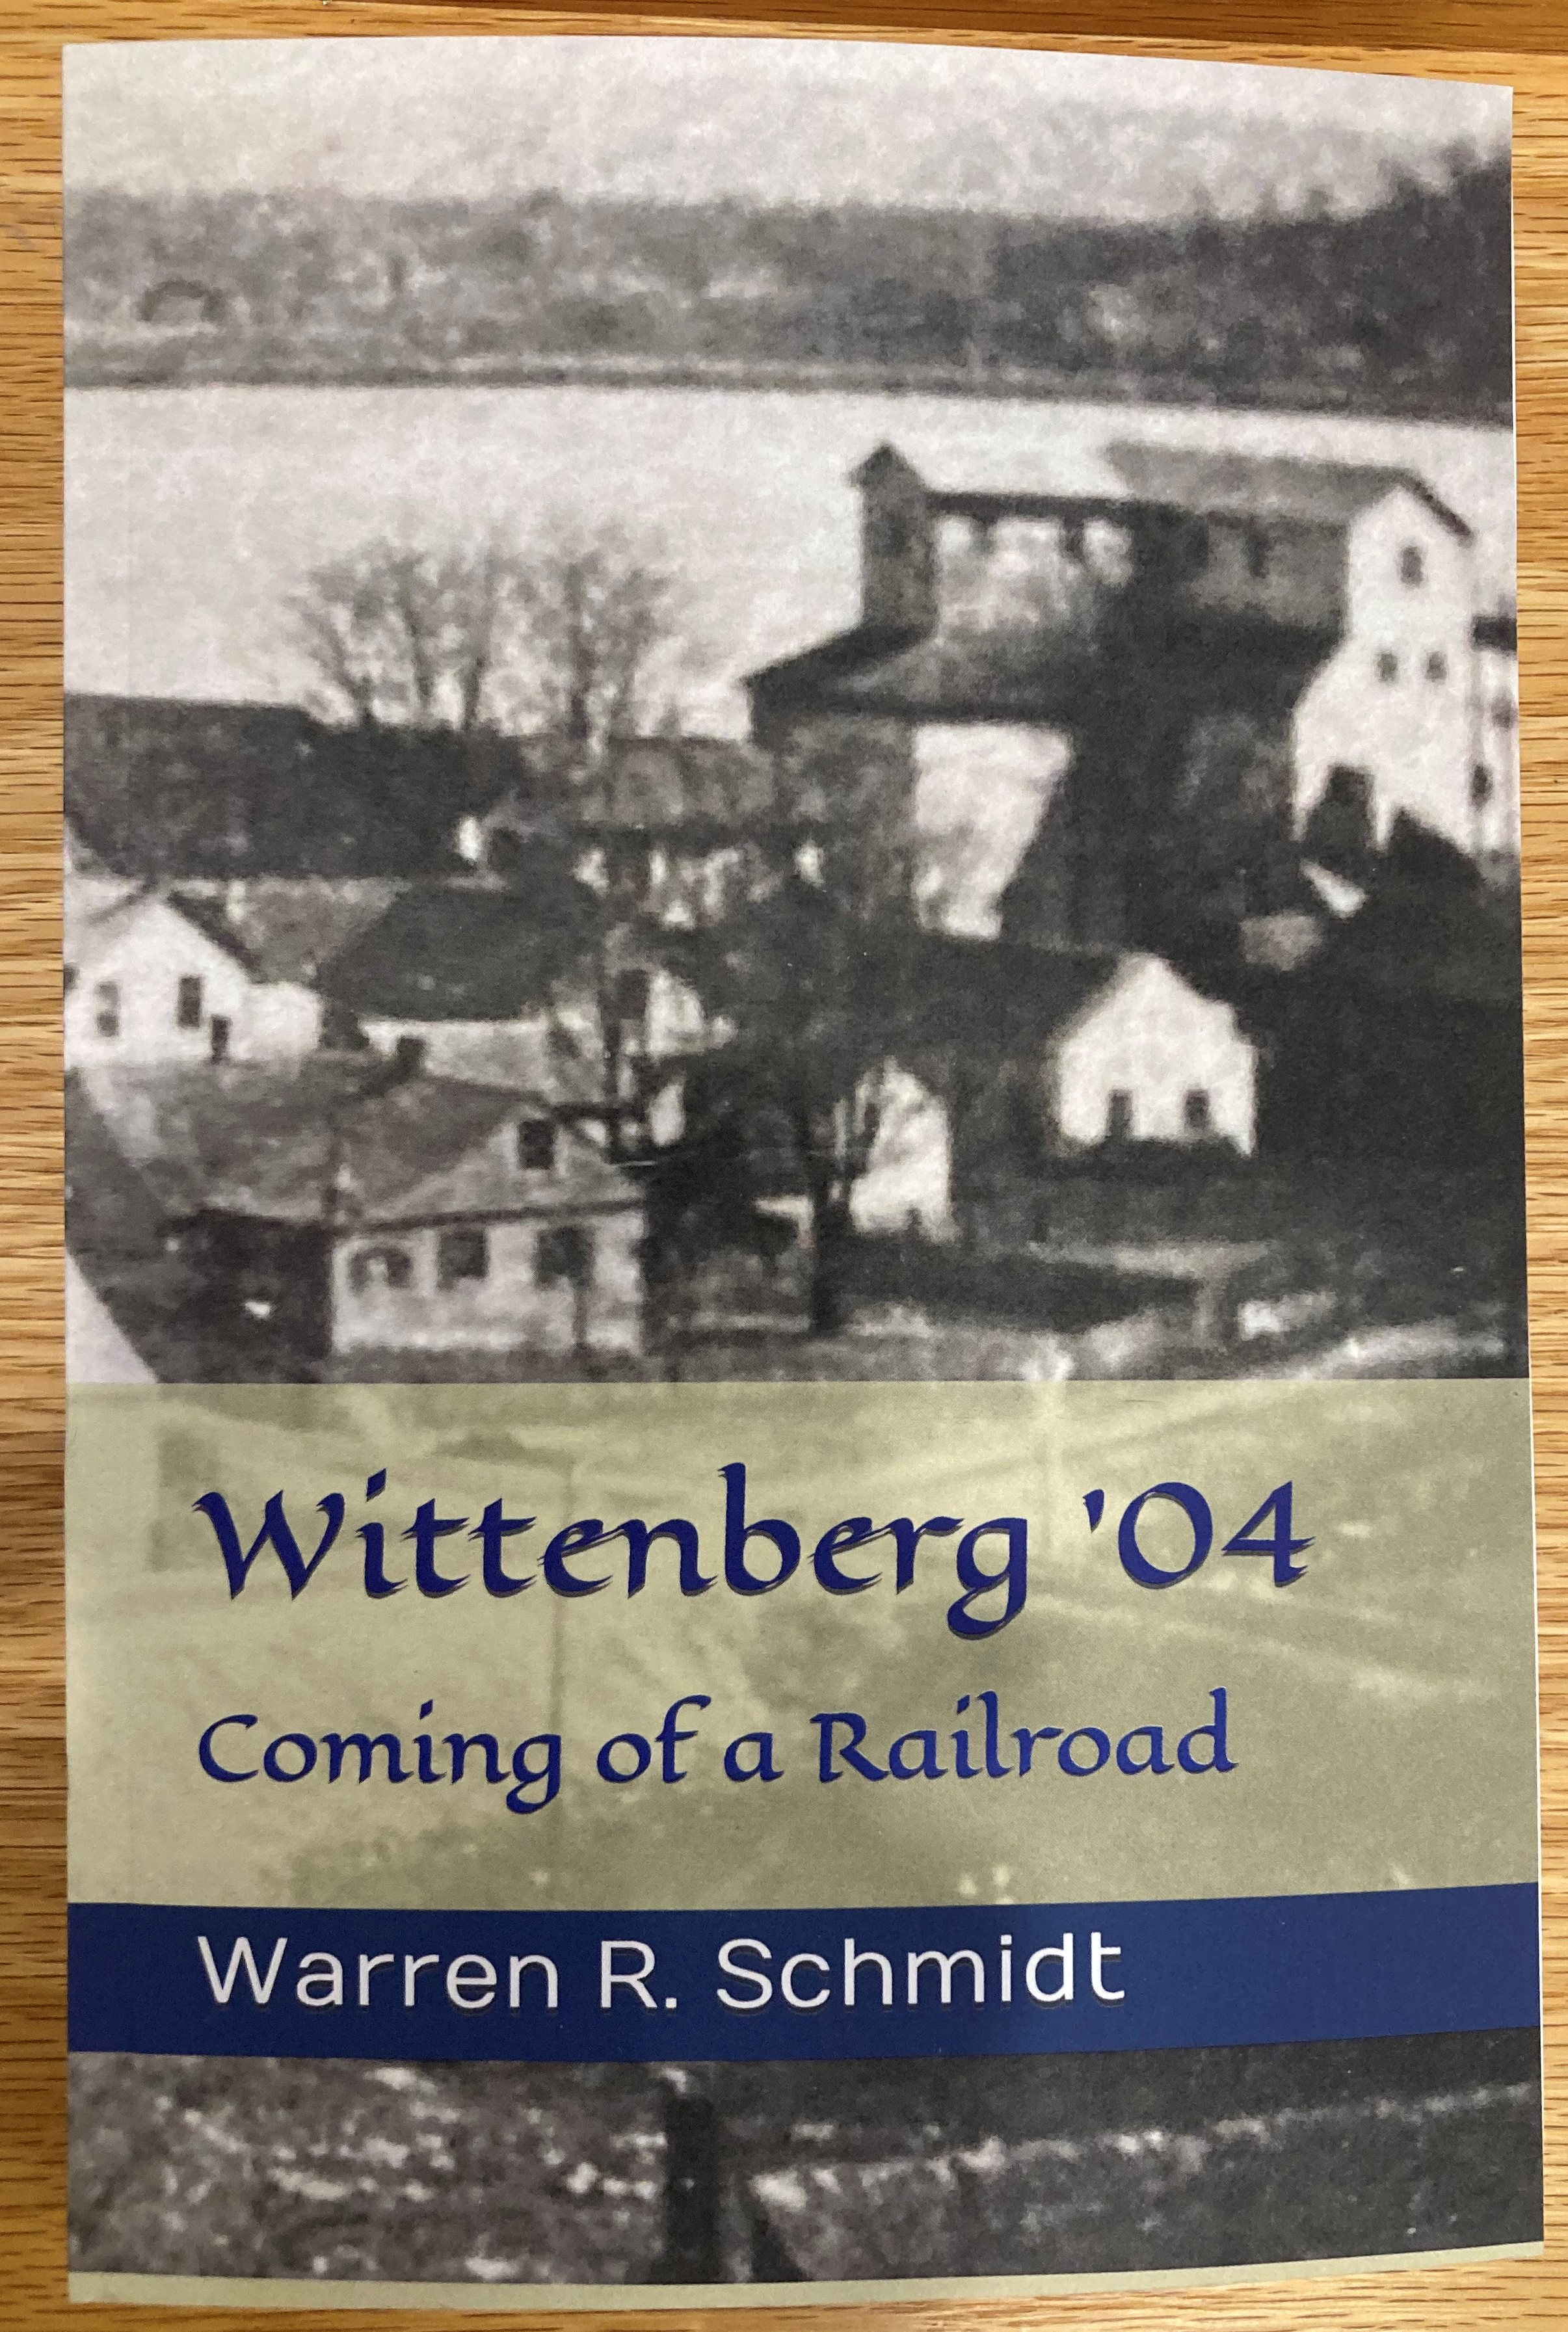 Wittenberg '04 book cover